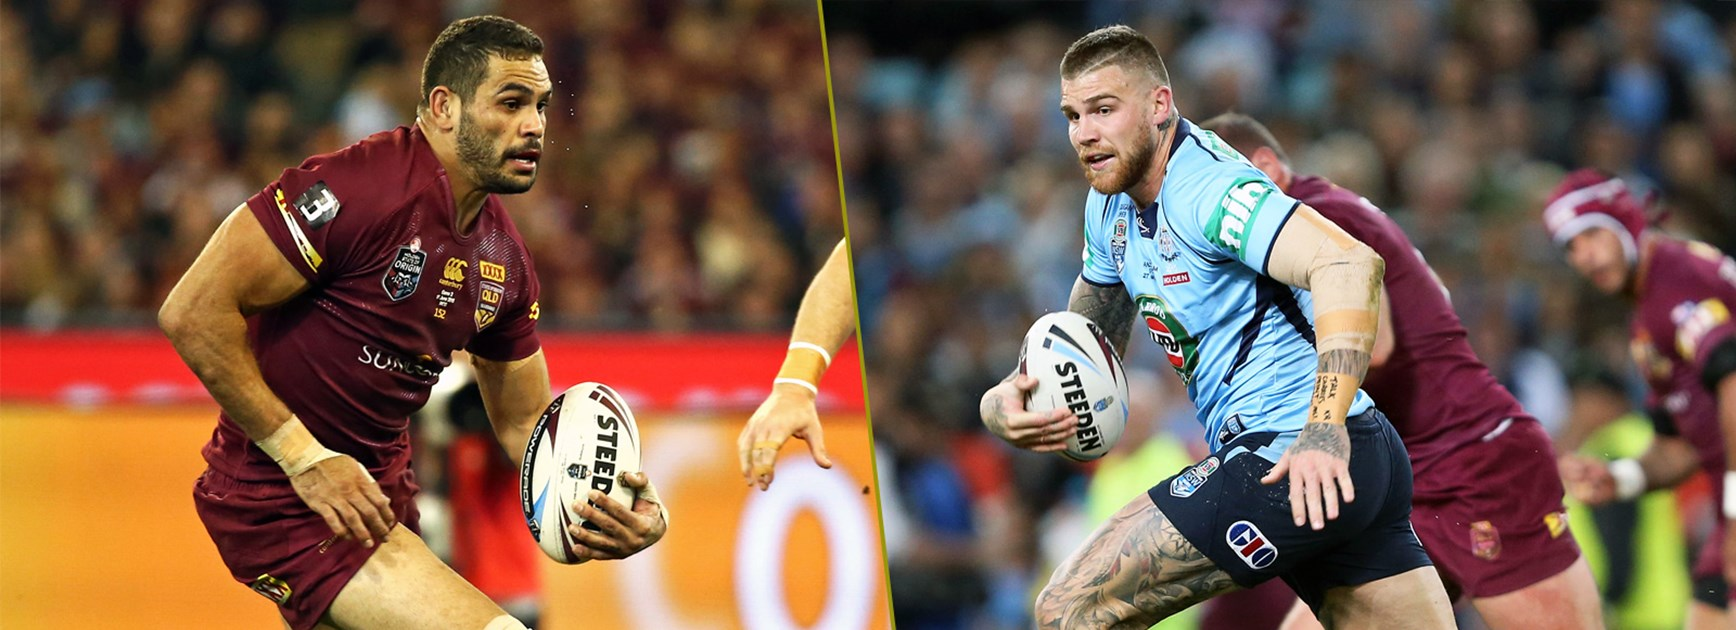 Last season they both lined up in the centres but in this year's Origin decider Greg Inglis and Josh Dugan will be key factors at fullback.